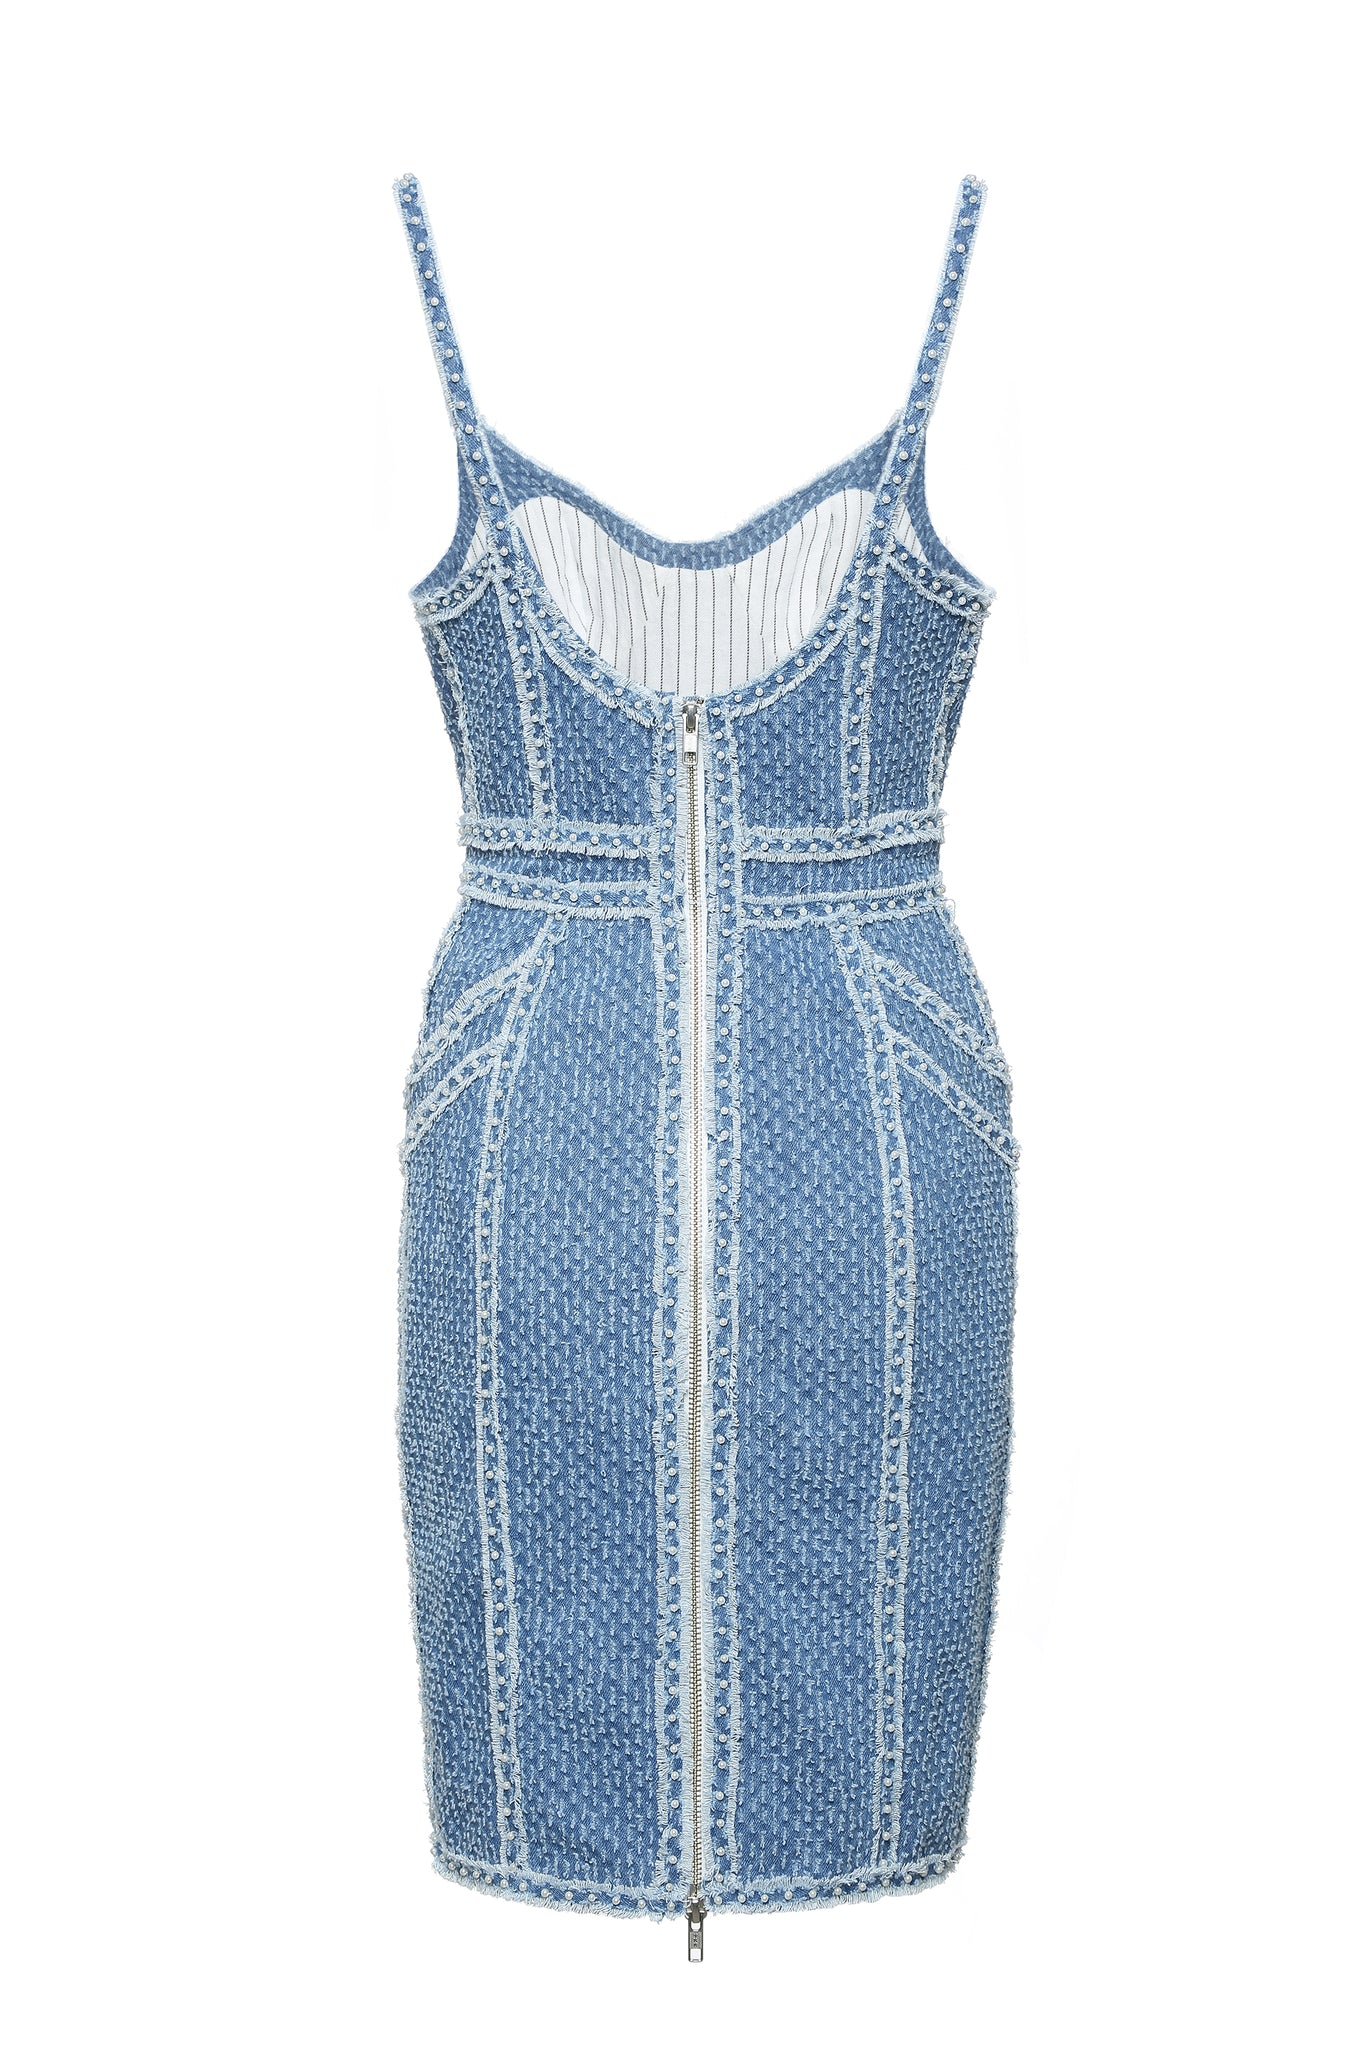 Dress, Strap, Denim with Pearl Embellishment, Tailored